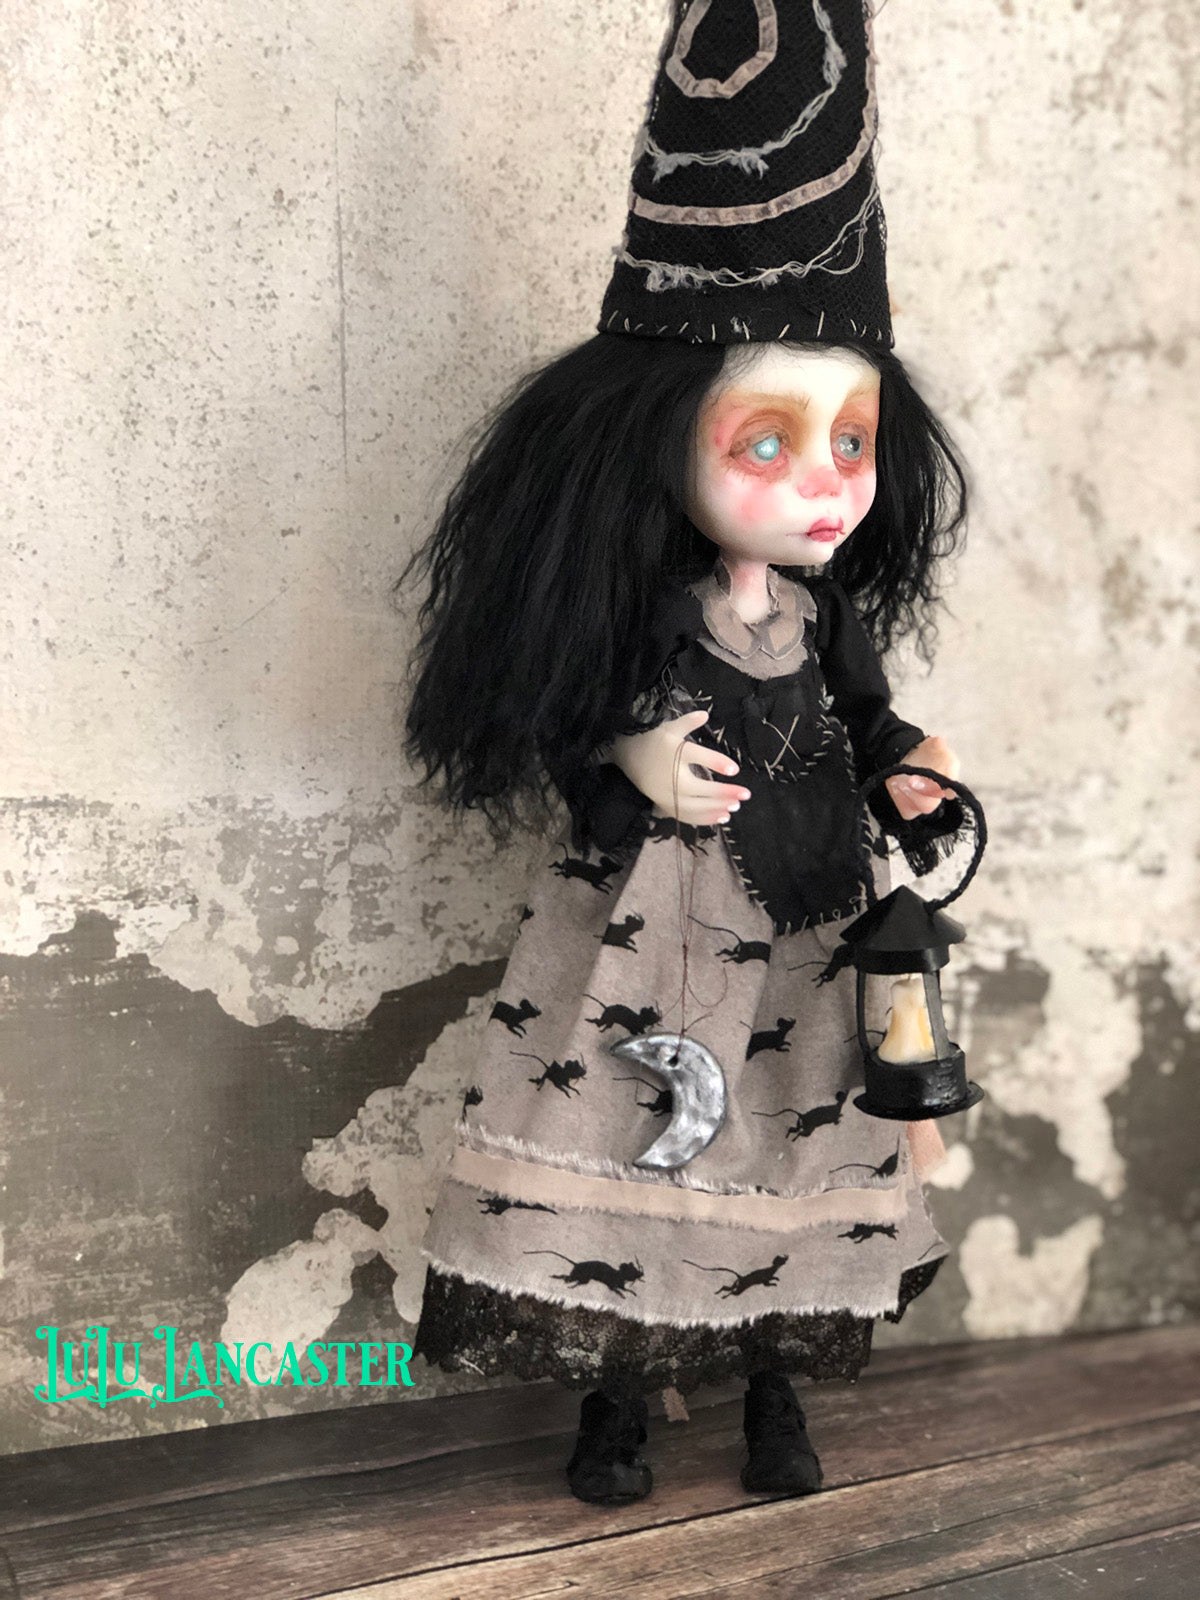 Wheatleigh the Witch  OOAK Art Doll LuLu Lancaster